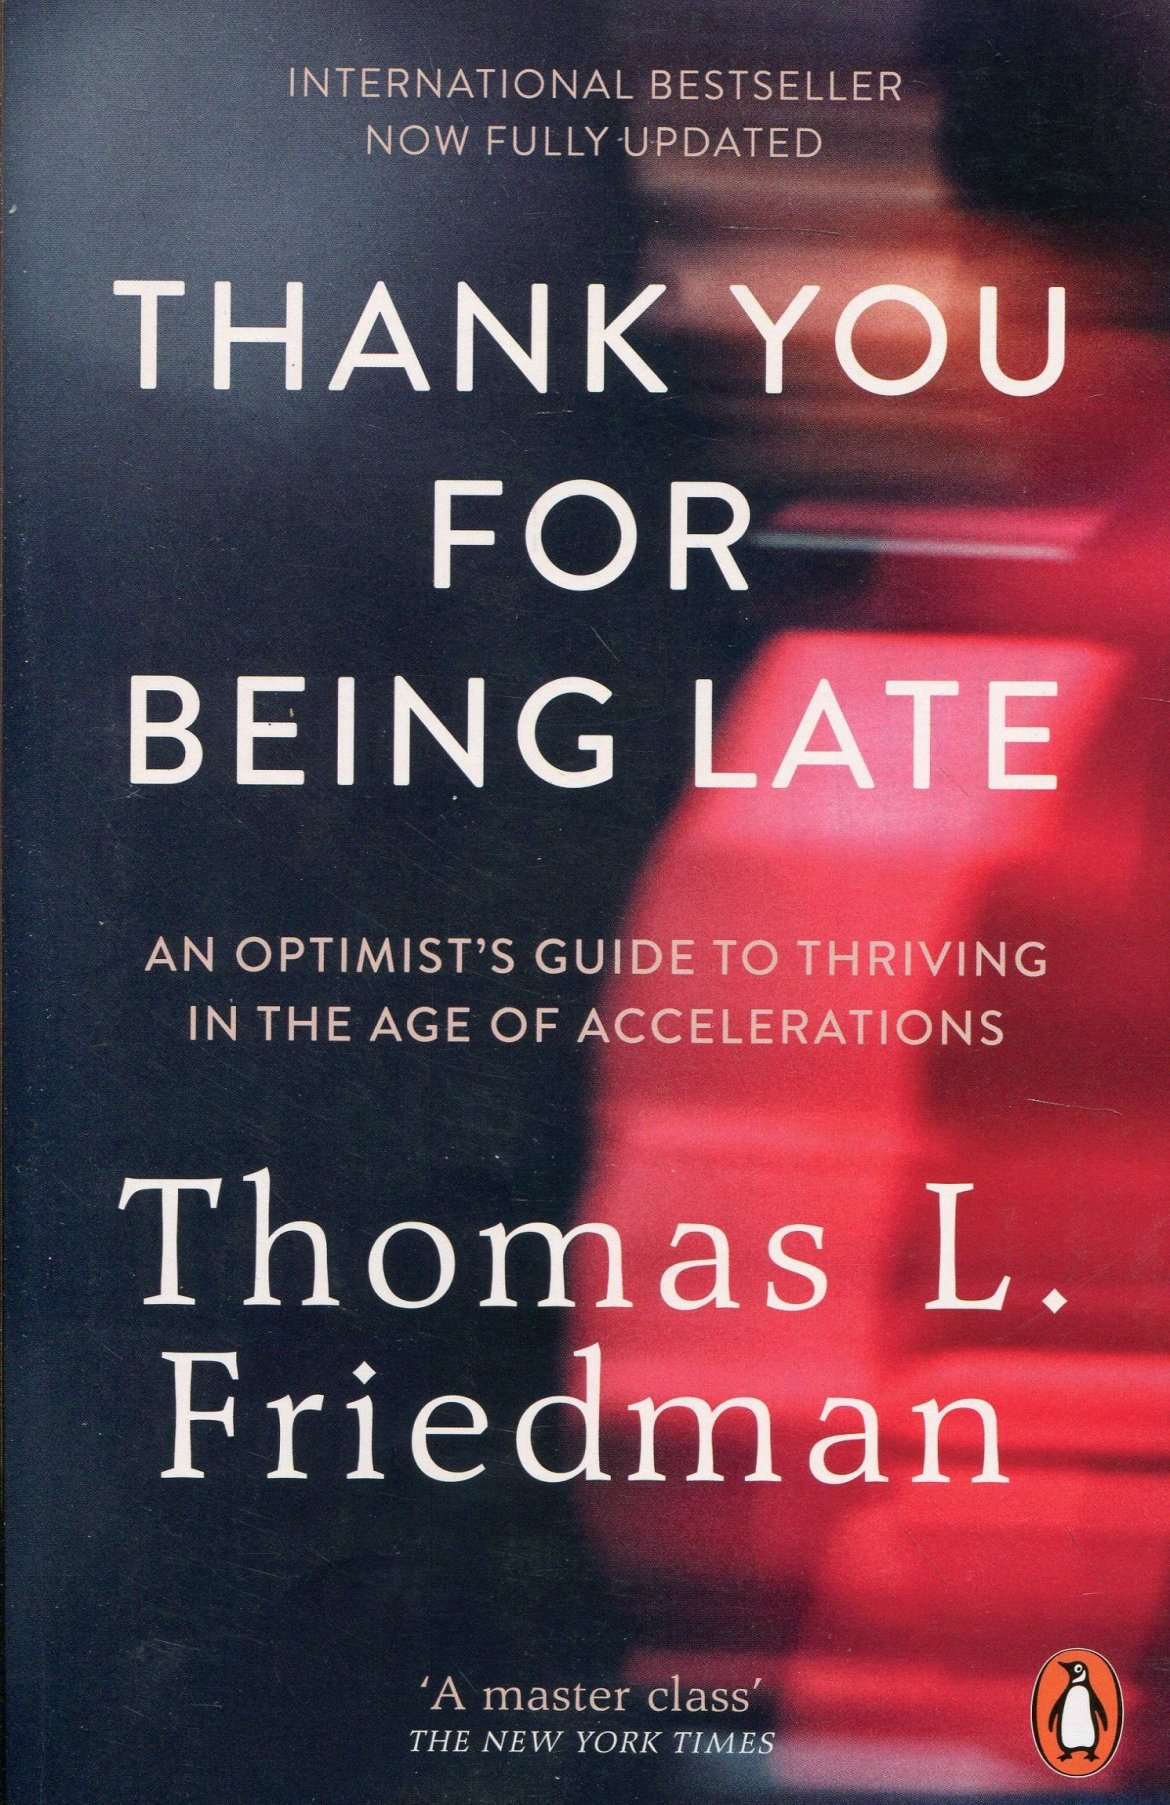 Image result for Thank You for Being Late: An Optimist's Guide to Thriving in the Age of Accelerations - Thomas L. Friedman